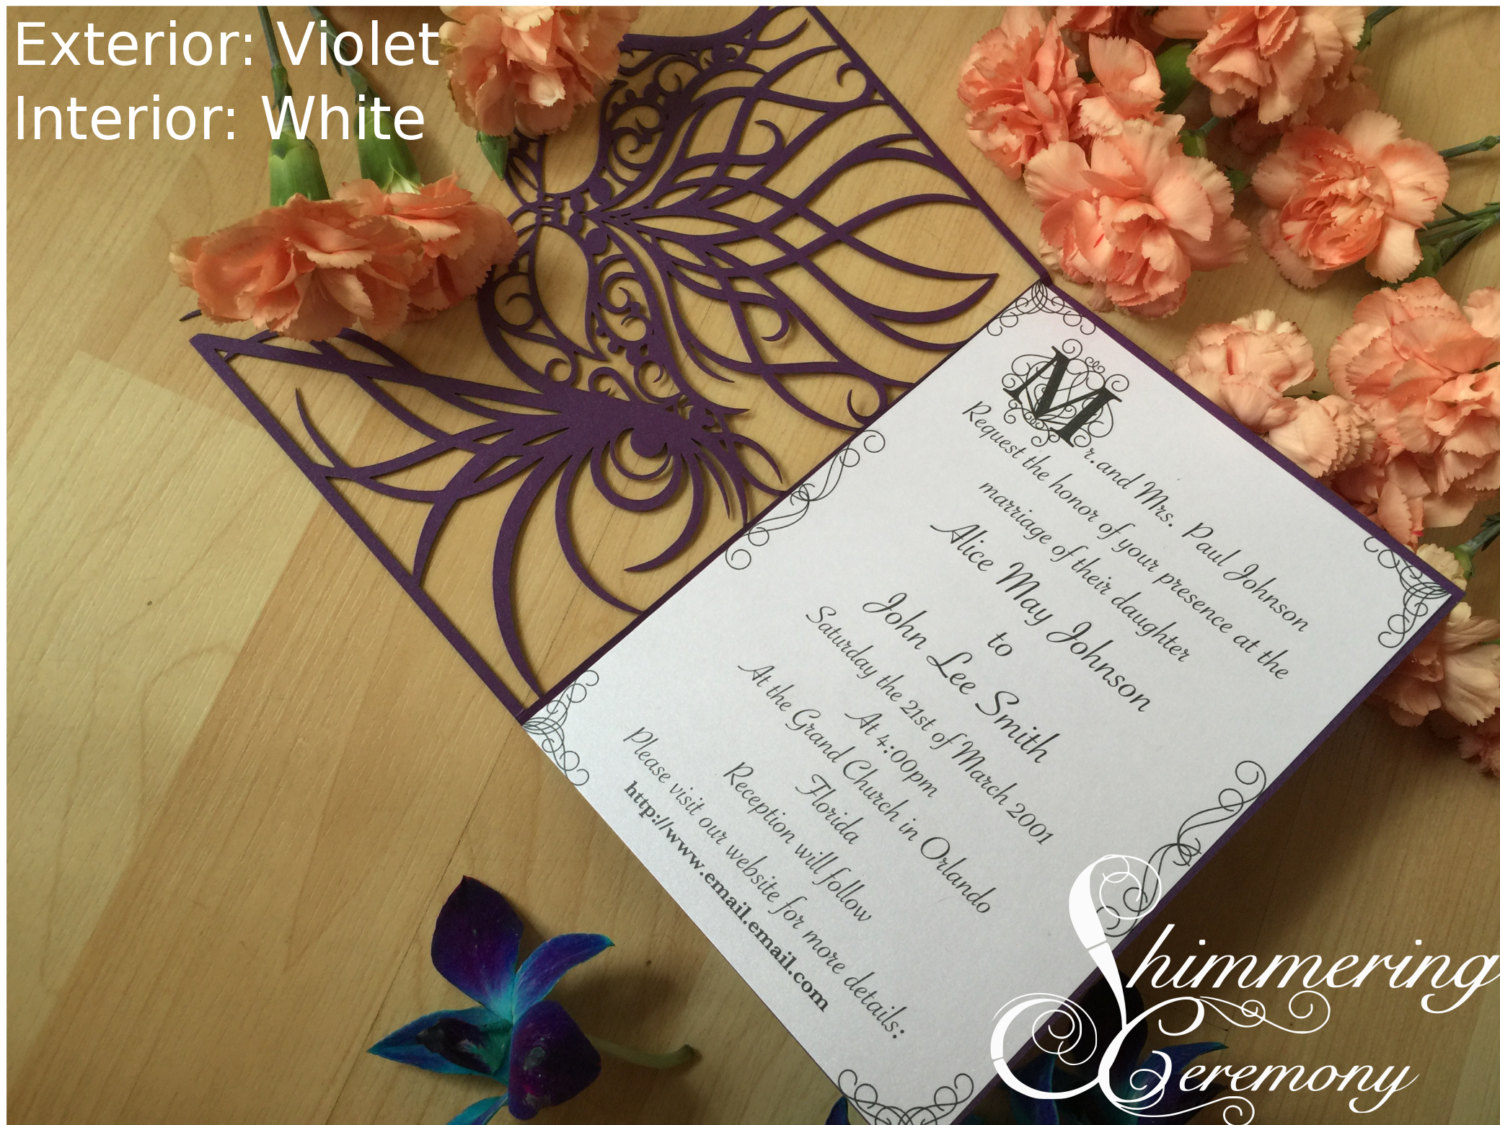 Mardi Gras Mask Laser Cut Invitation Shimmering Ceremony